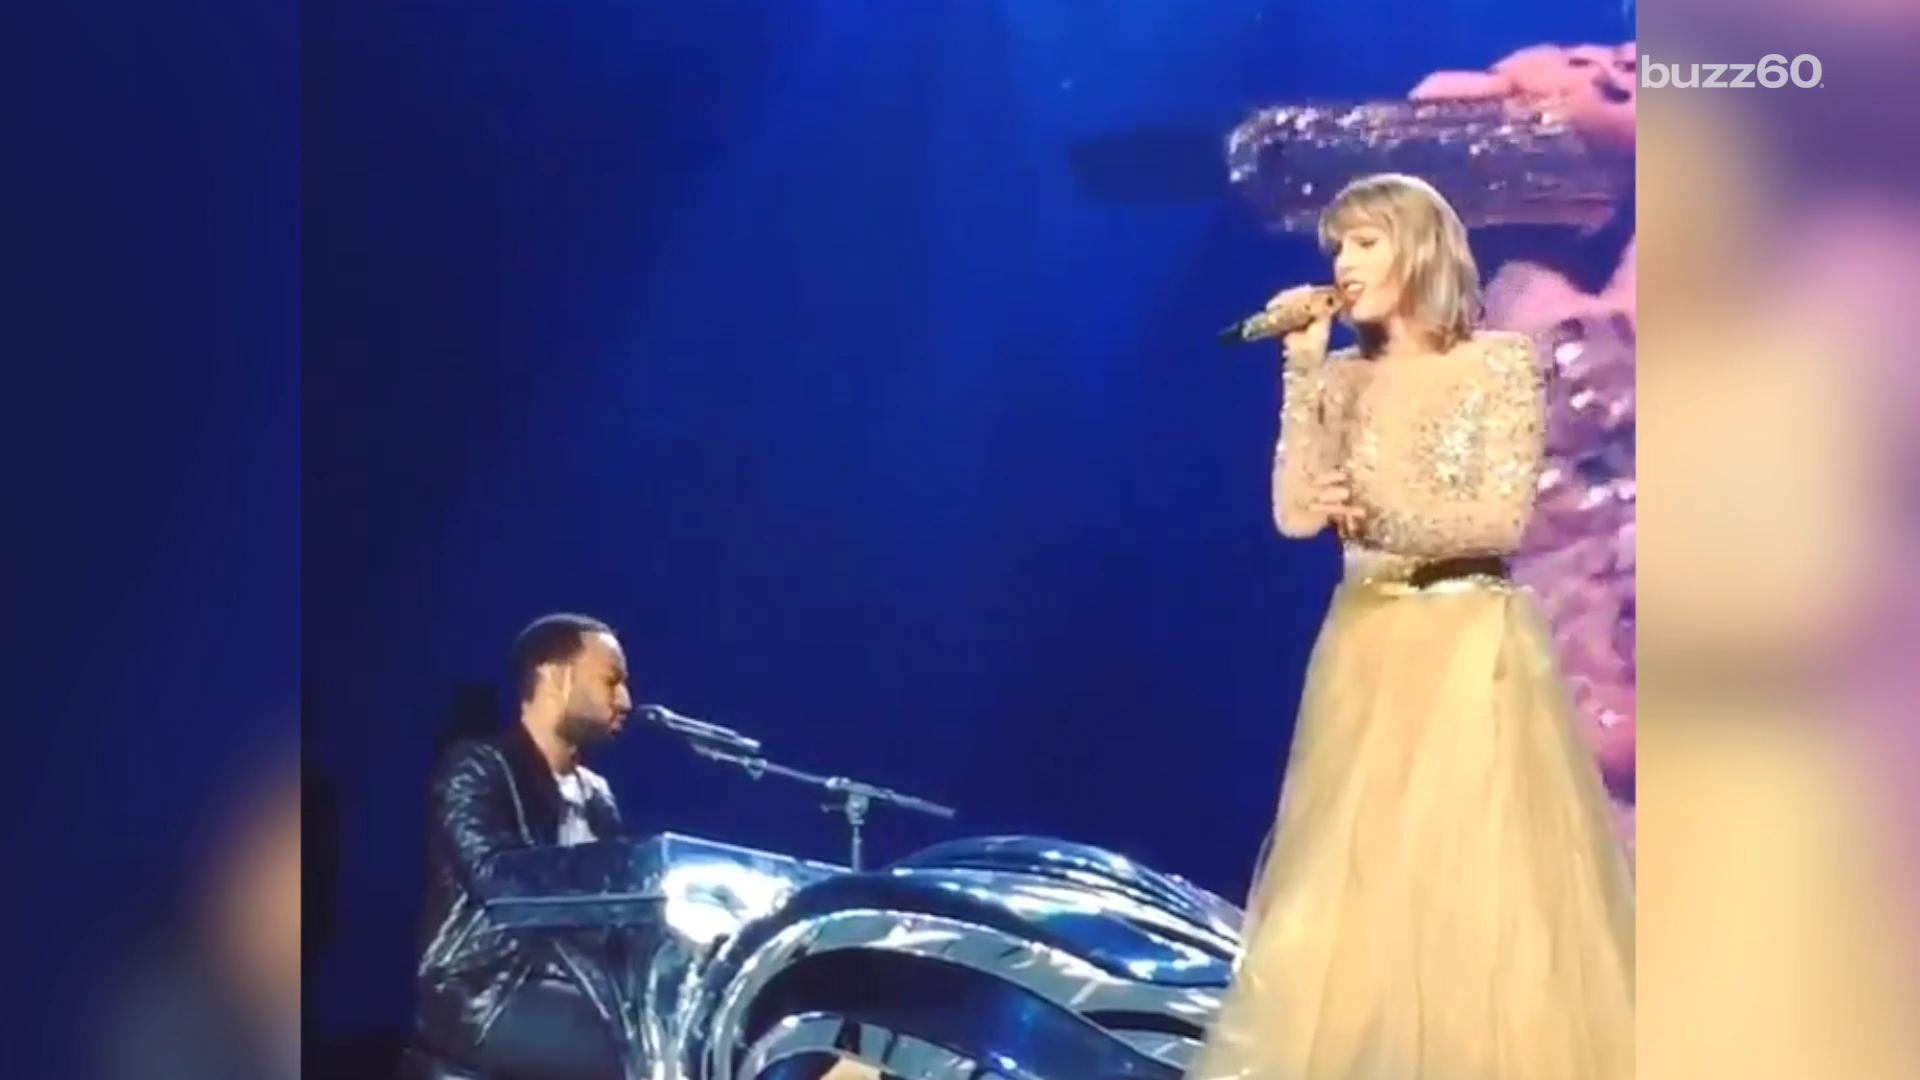 Taylor Swift brings John Legend on stage for 'All of Me' duet